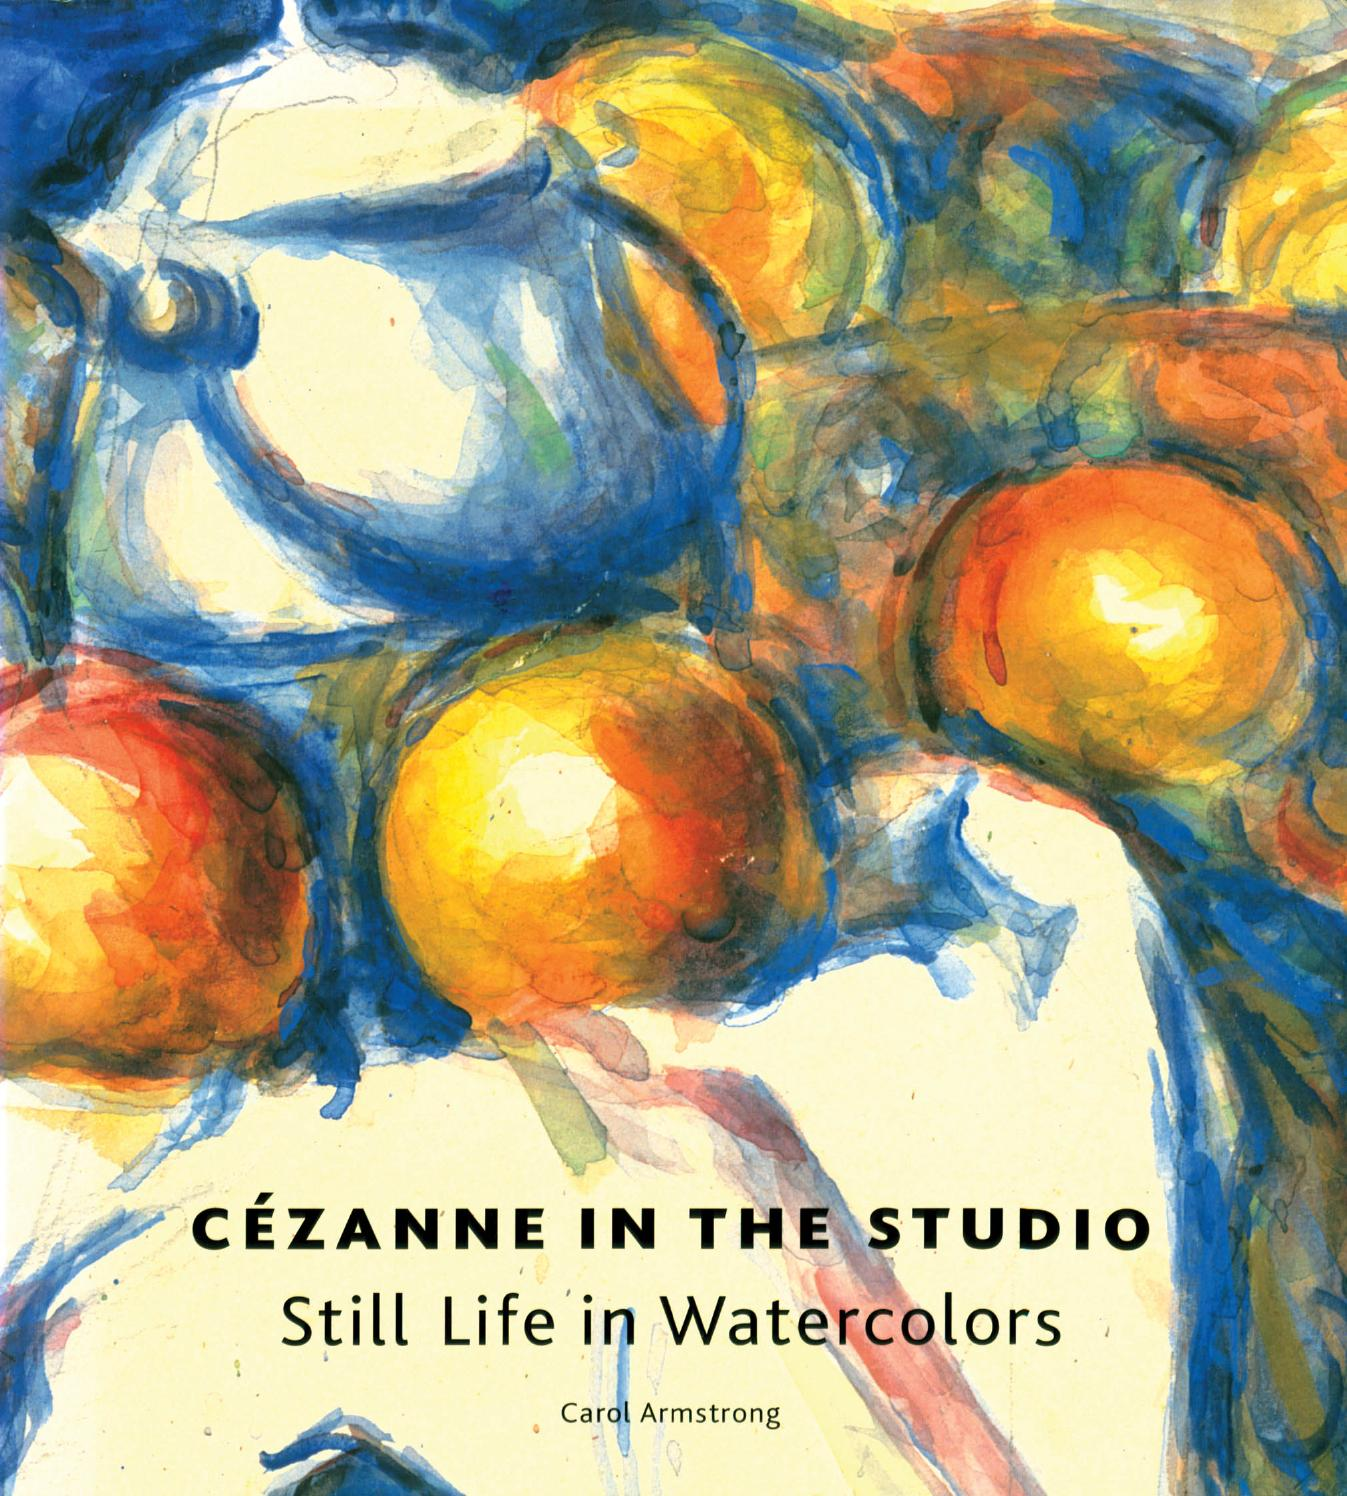 claude monet still life with bottle carafe bread and wine notebook decorative notebook 70 sheet ruled 85 x 11